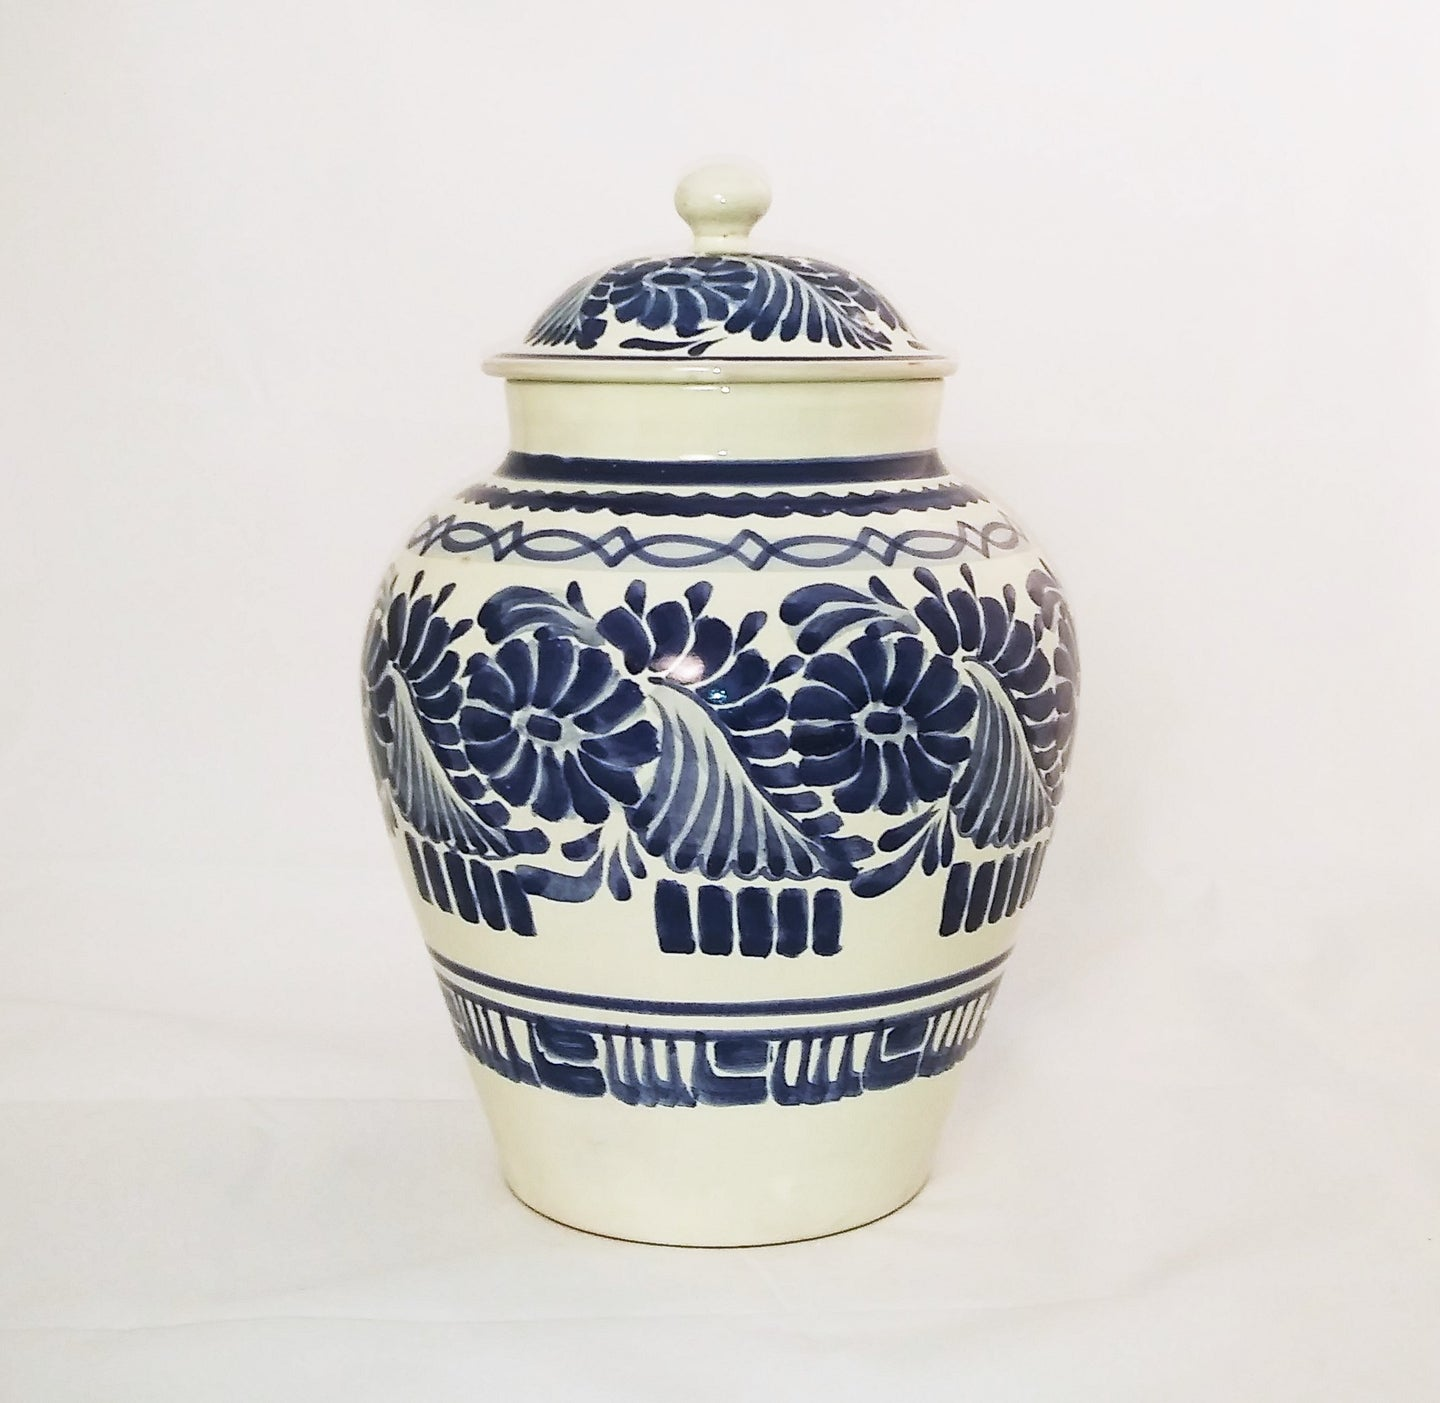 Flowers Decorative Vase w/Lid 15